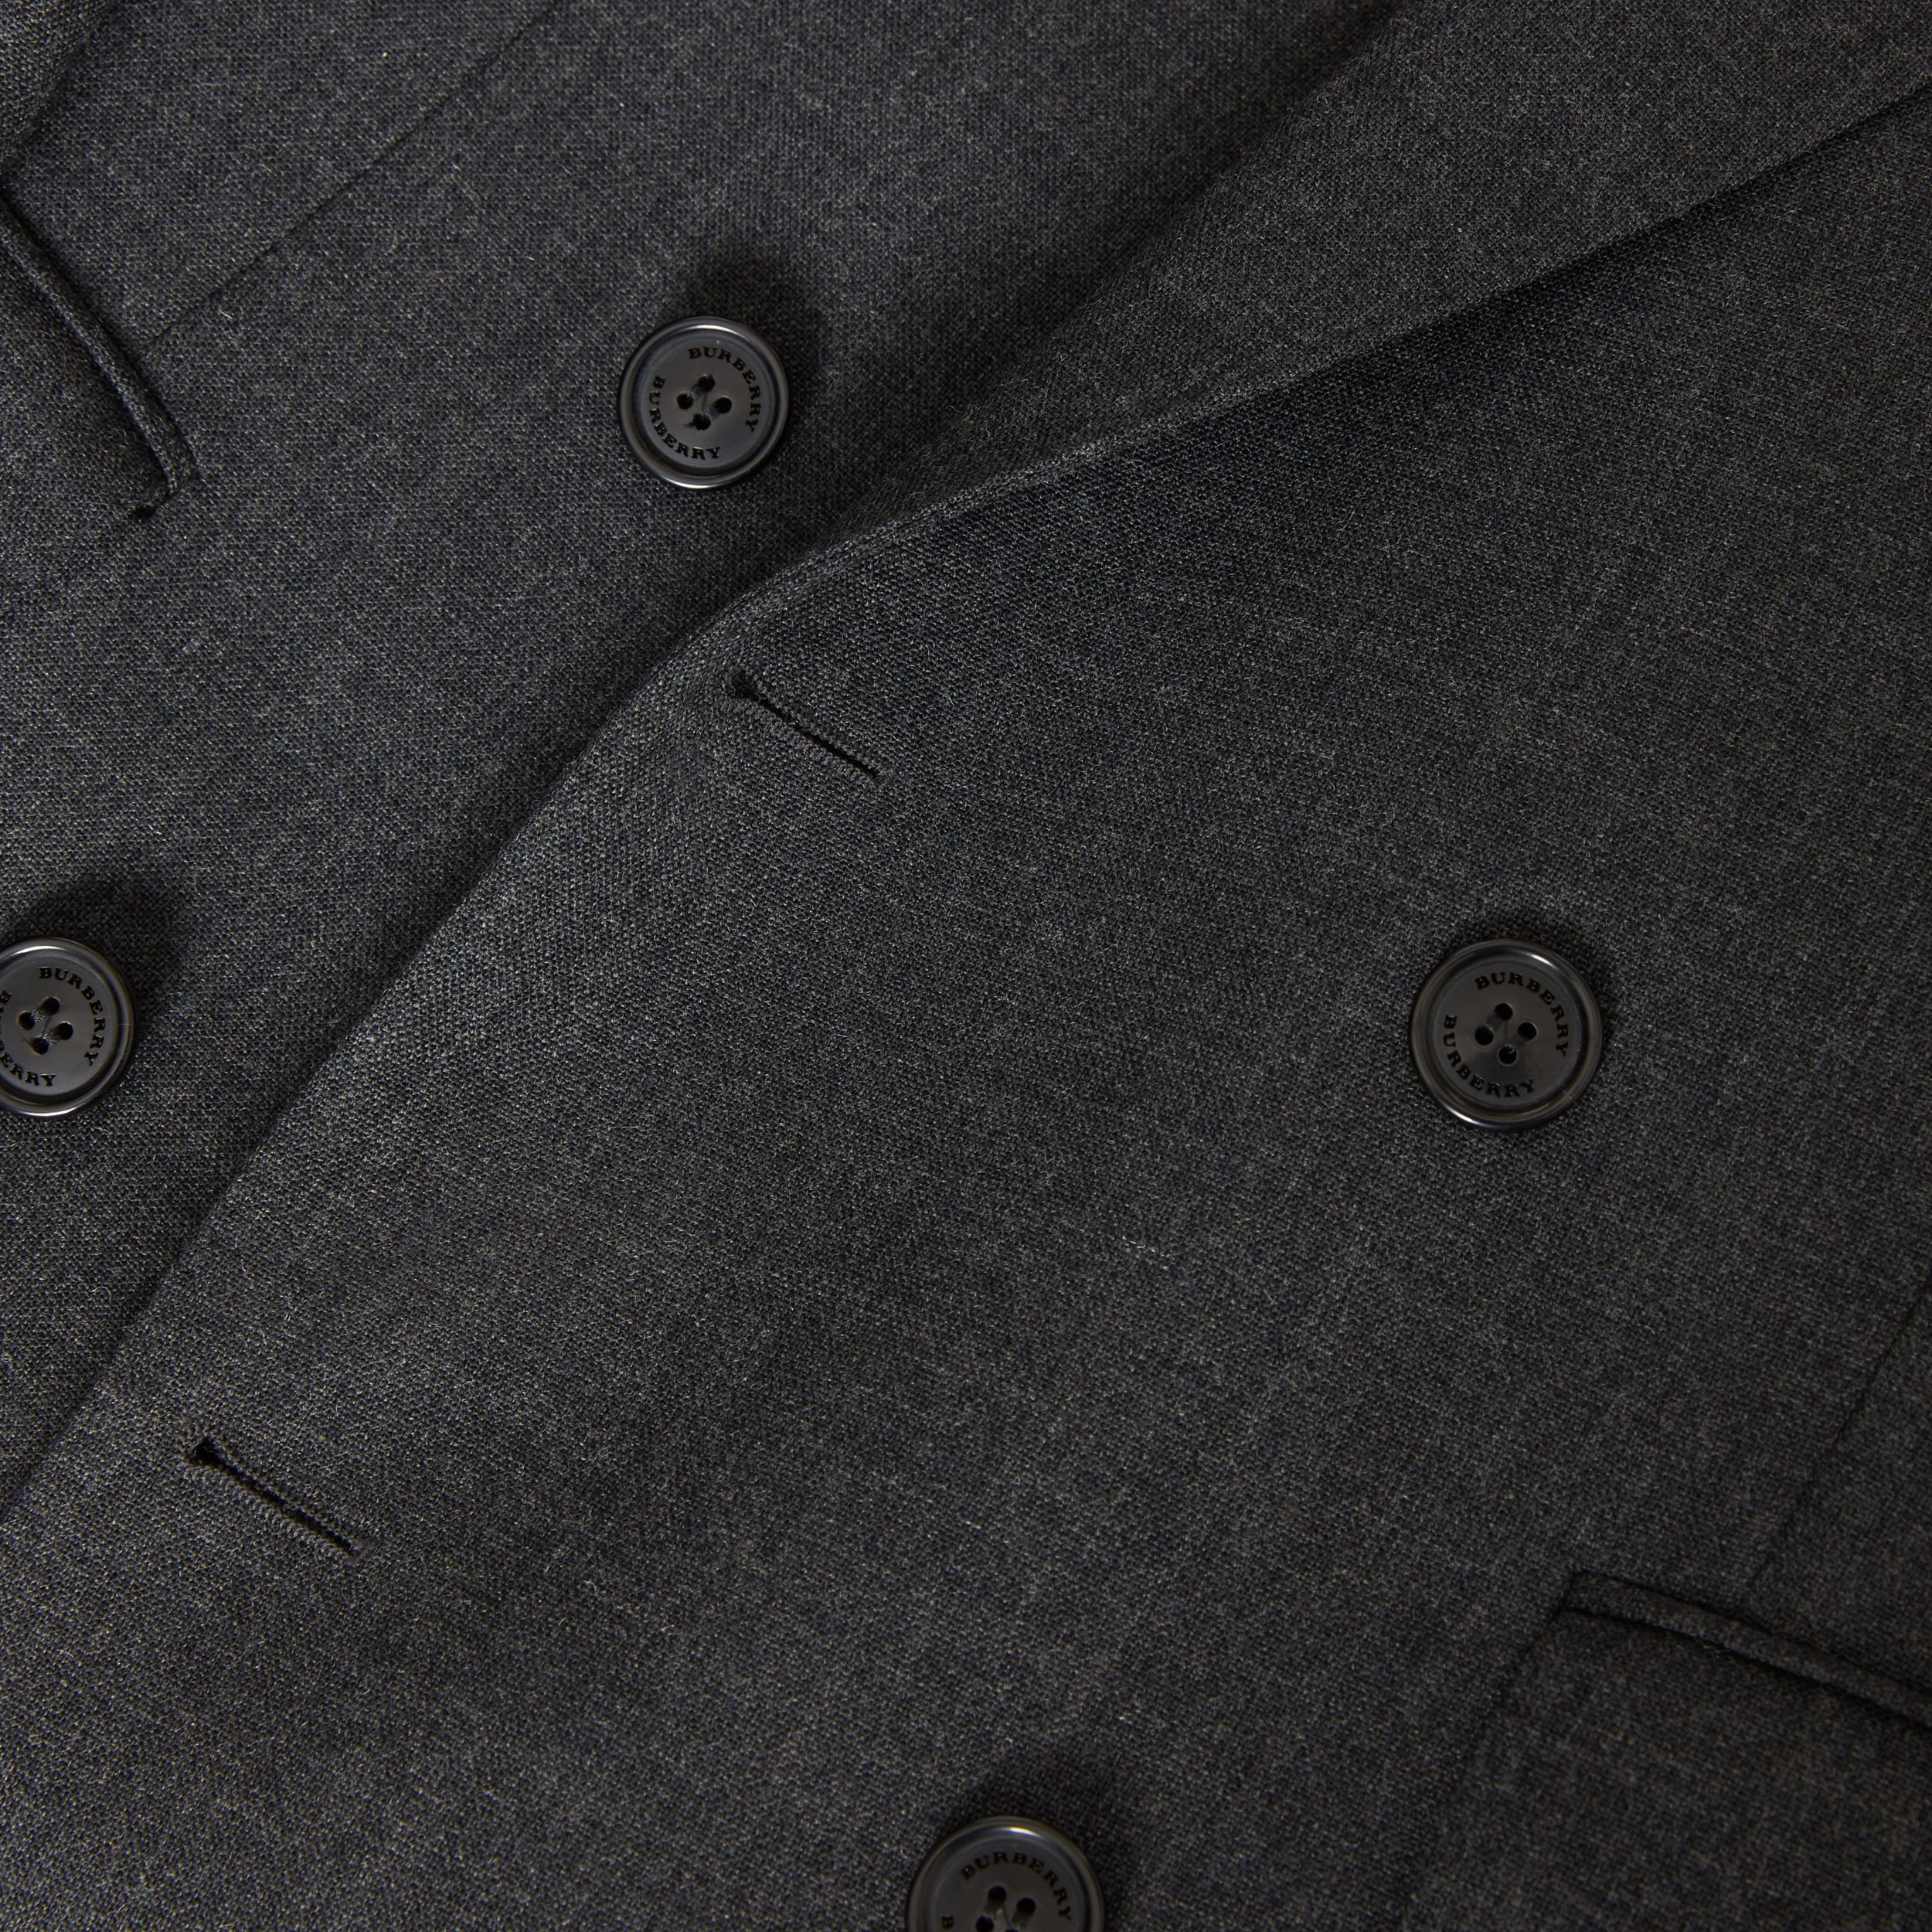 English Fit Wool Double-breasted Jacket in Dark Grey - Men | Burberry - 2